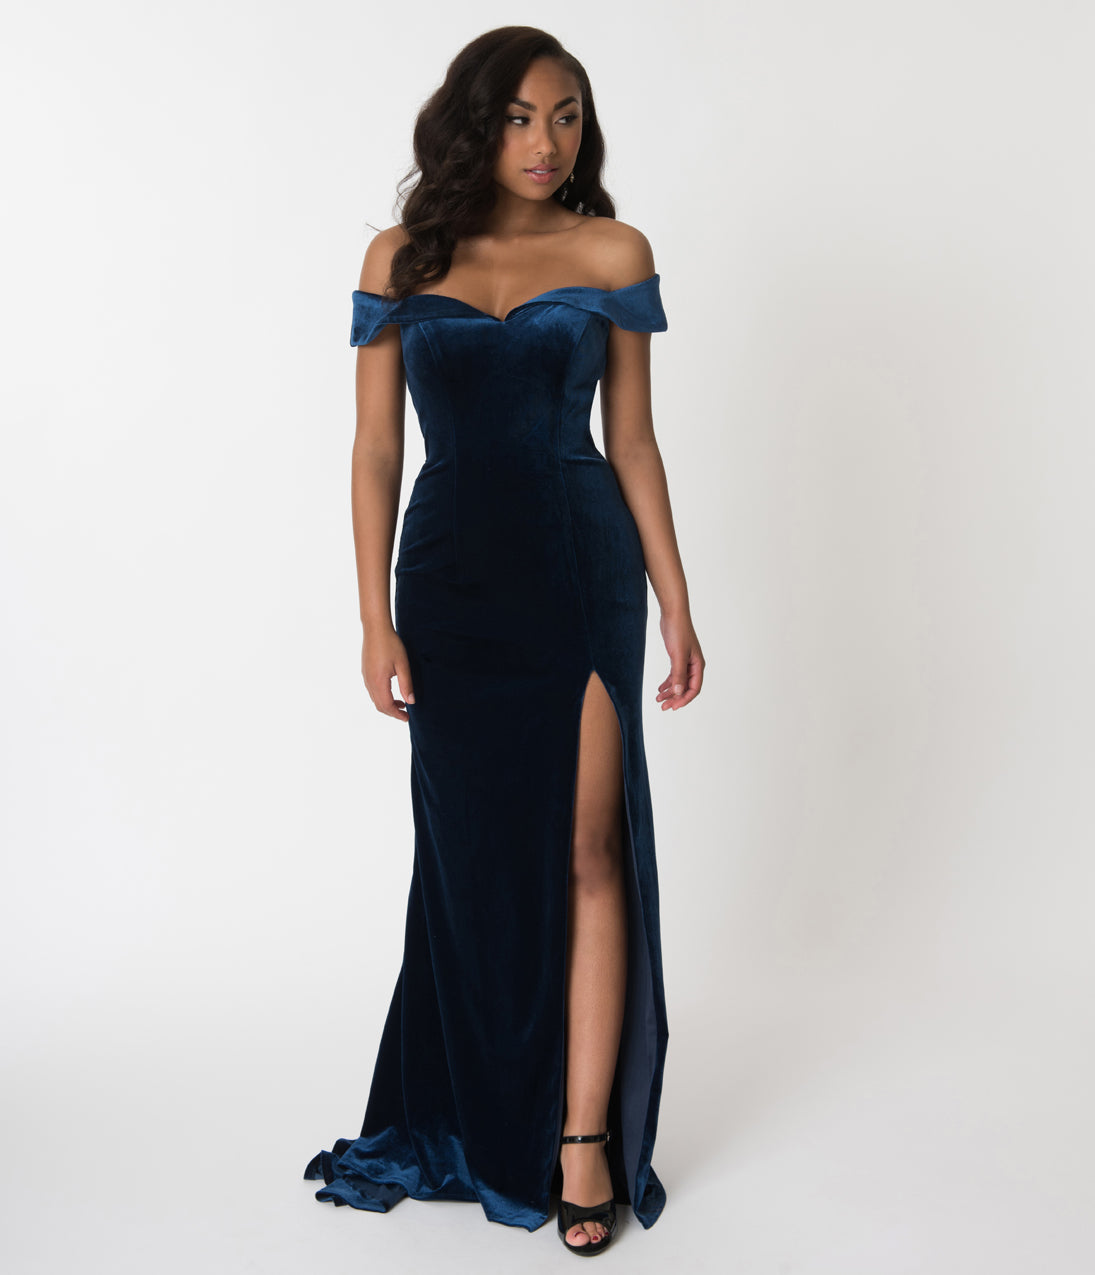 1940s Evening, Prom, Party, Cocktail Dresses & Ball Gowns Navy Blue Velvet Bateau Neckline Cap Sleeve Gown $180.00 AT vintagedancer.com